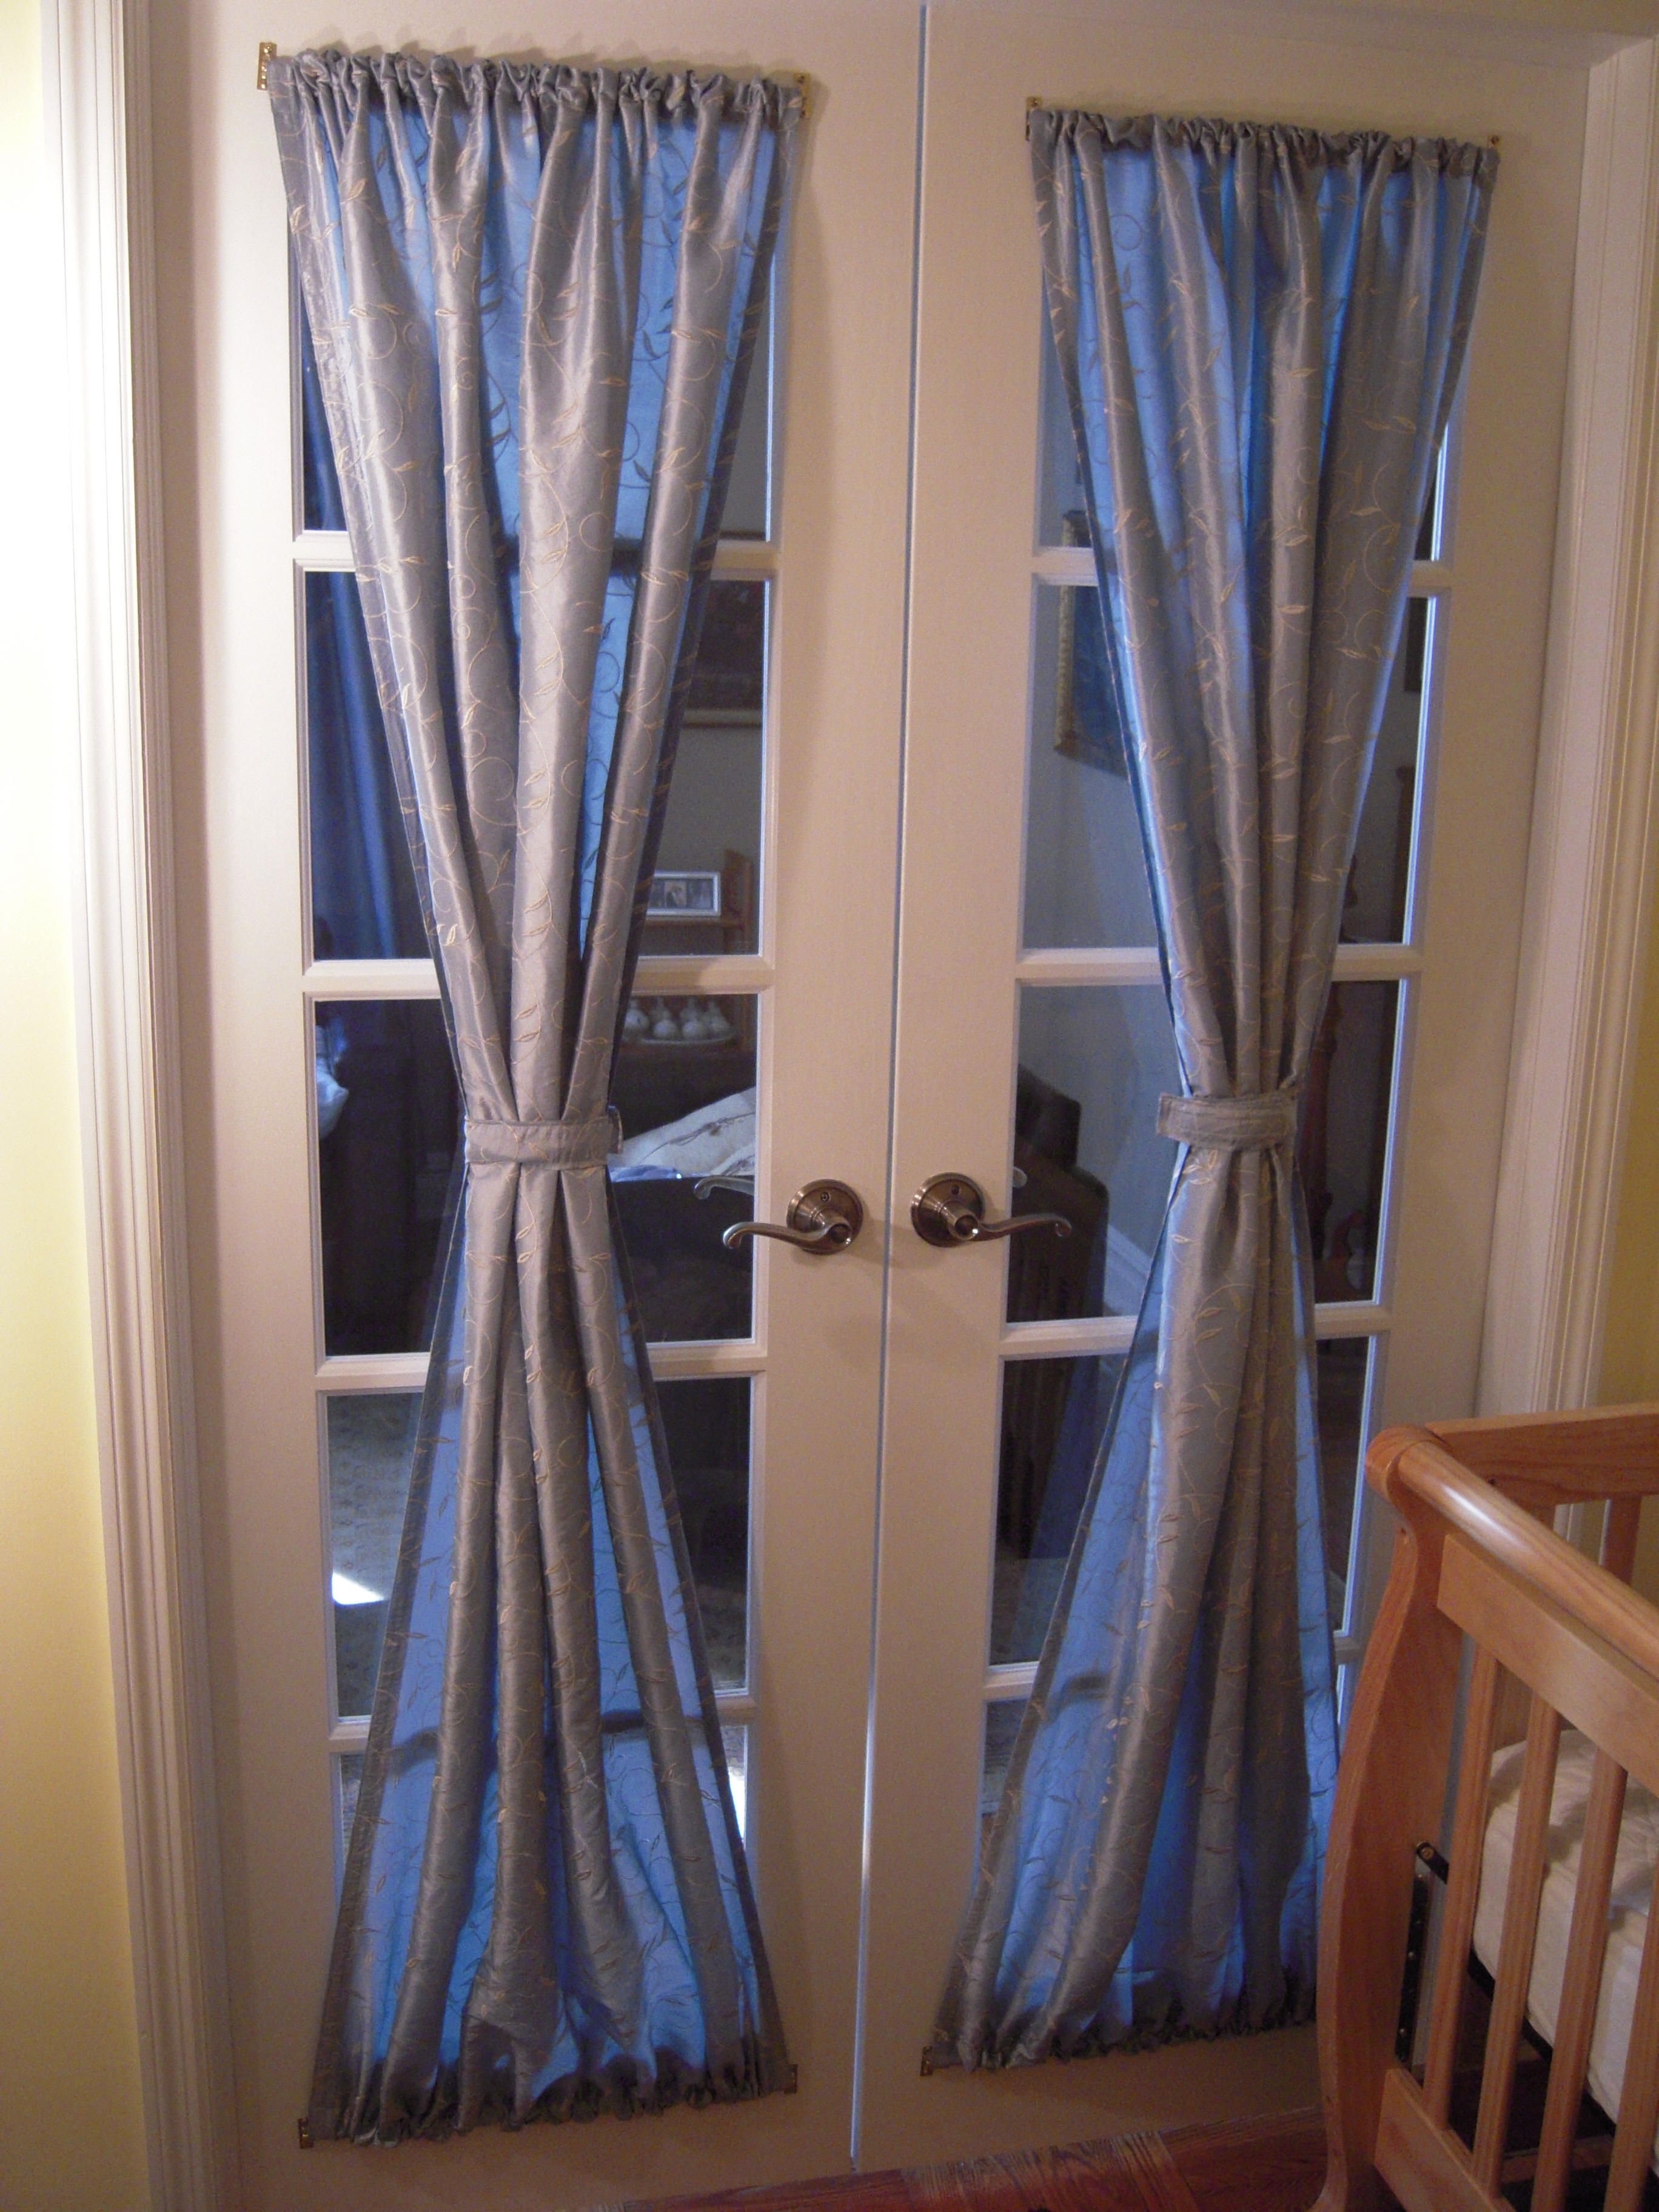 French door curtains for more french door curtain ideas visit www homeizy com french door curtain ideas